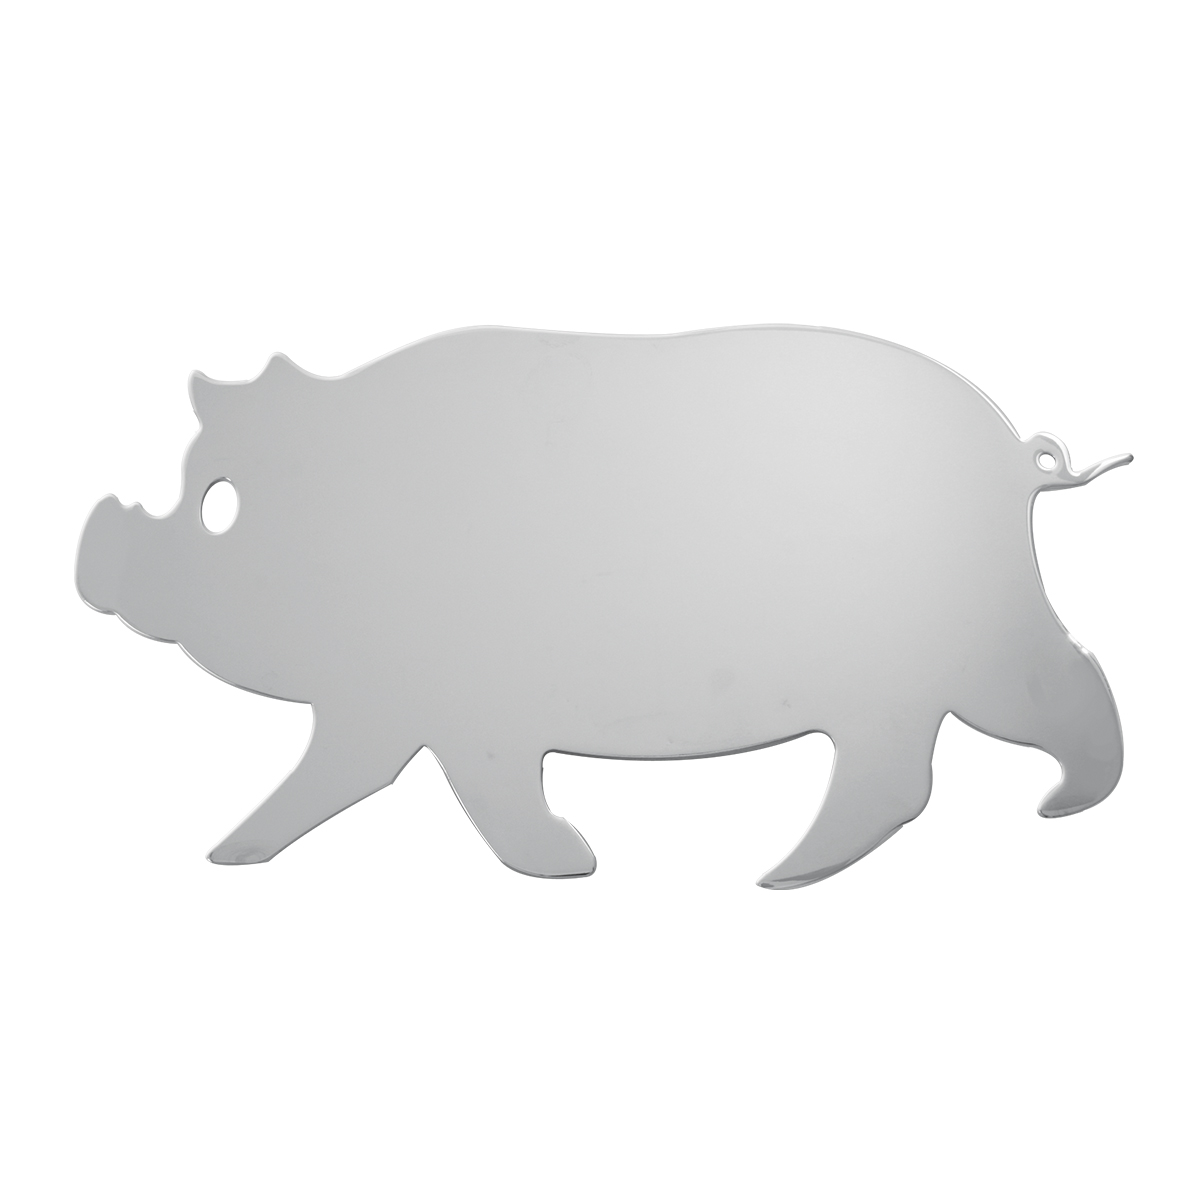 #94070 Large Pig Cut Out with Studs - Facing Left